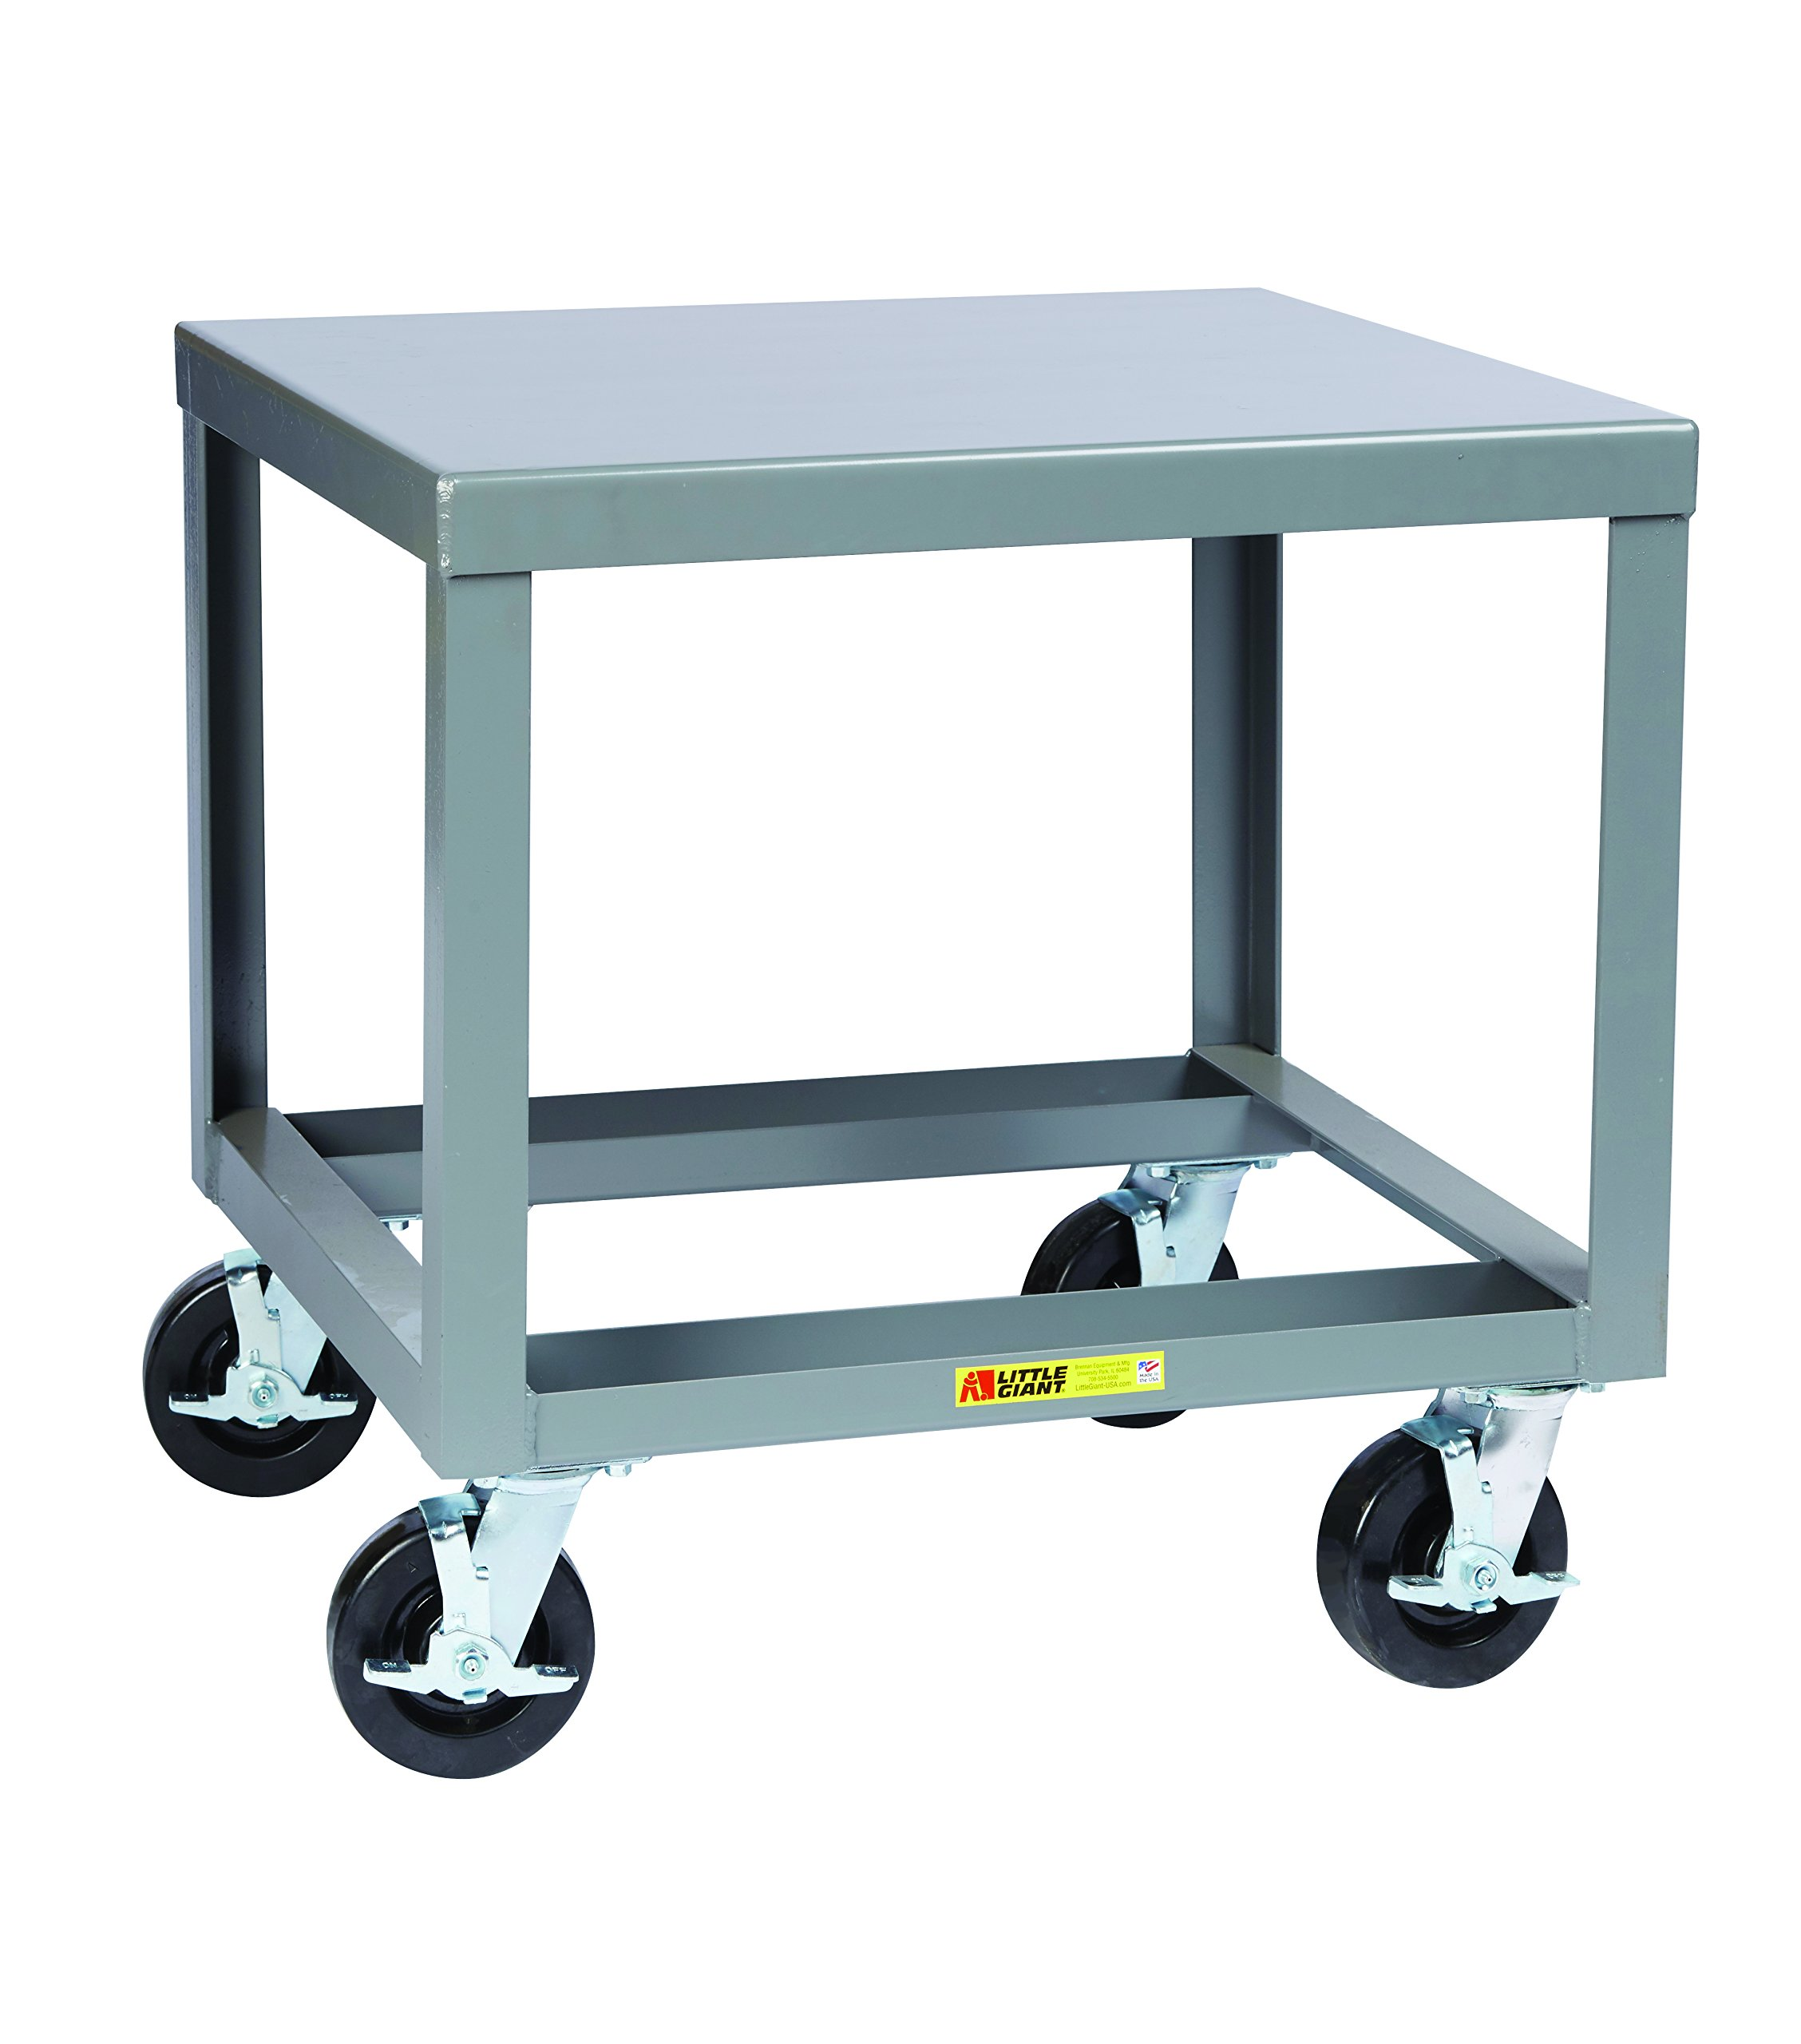 Little Giant MTH3036-6PHBK30 Mobile Machine Table, 3600 lb. Capacity, 30'' x 36'' Top, 36'' Length, 30'' Width, 30'' Height, 7 Gauge, Gray